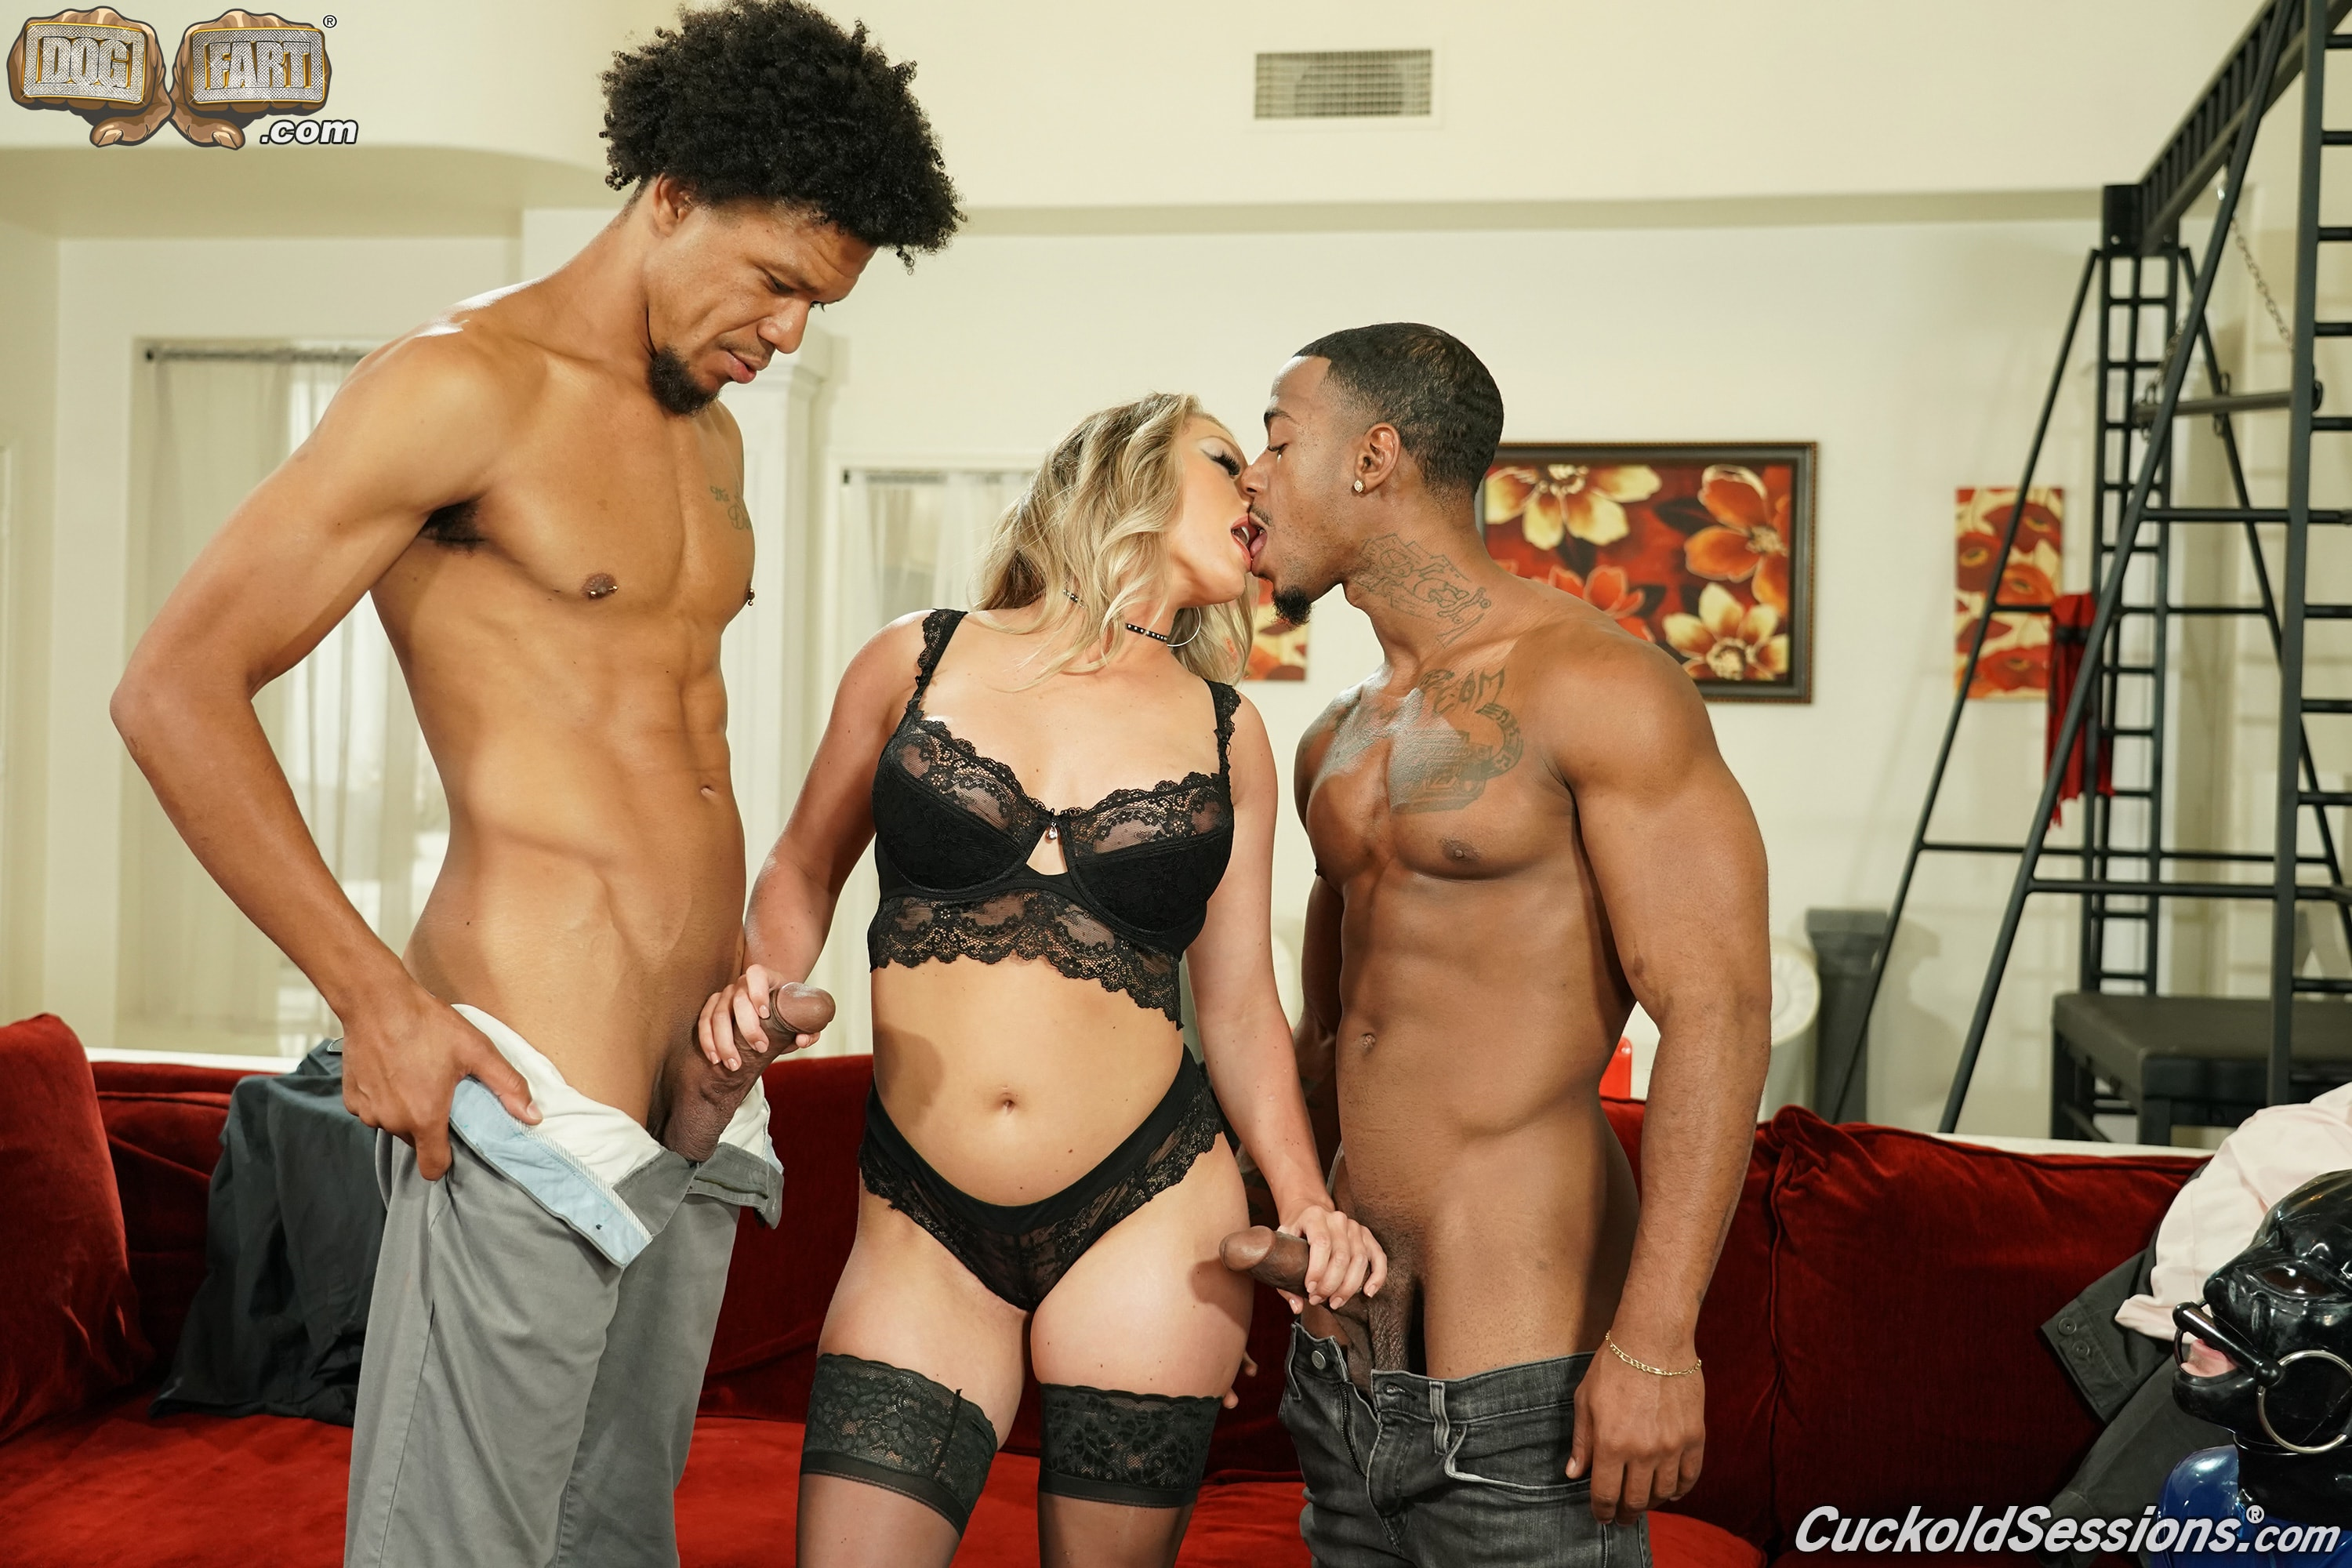 Dogfart '- Cuckold Sessions' starring Kayley Gunner (Photo 11)